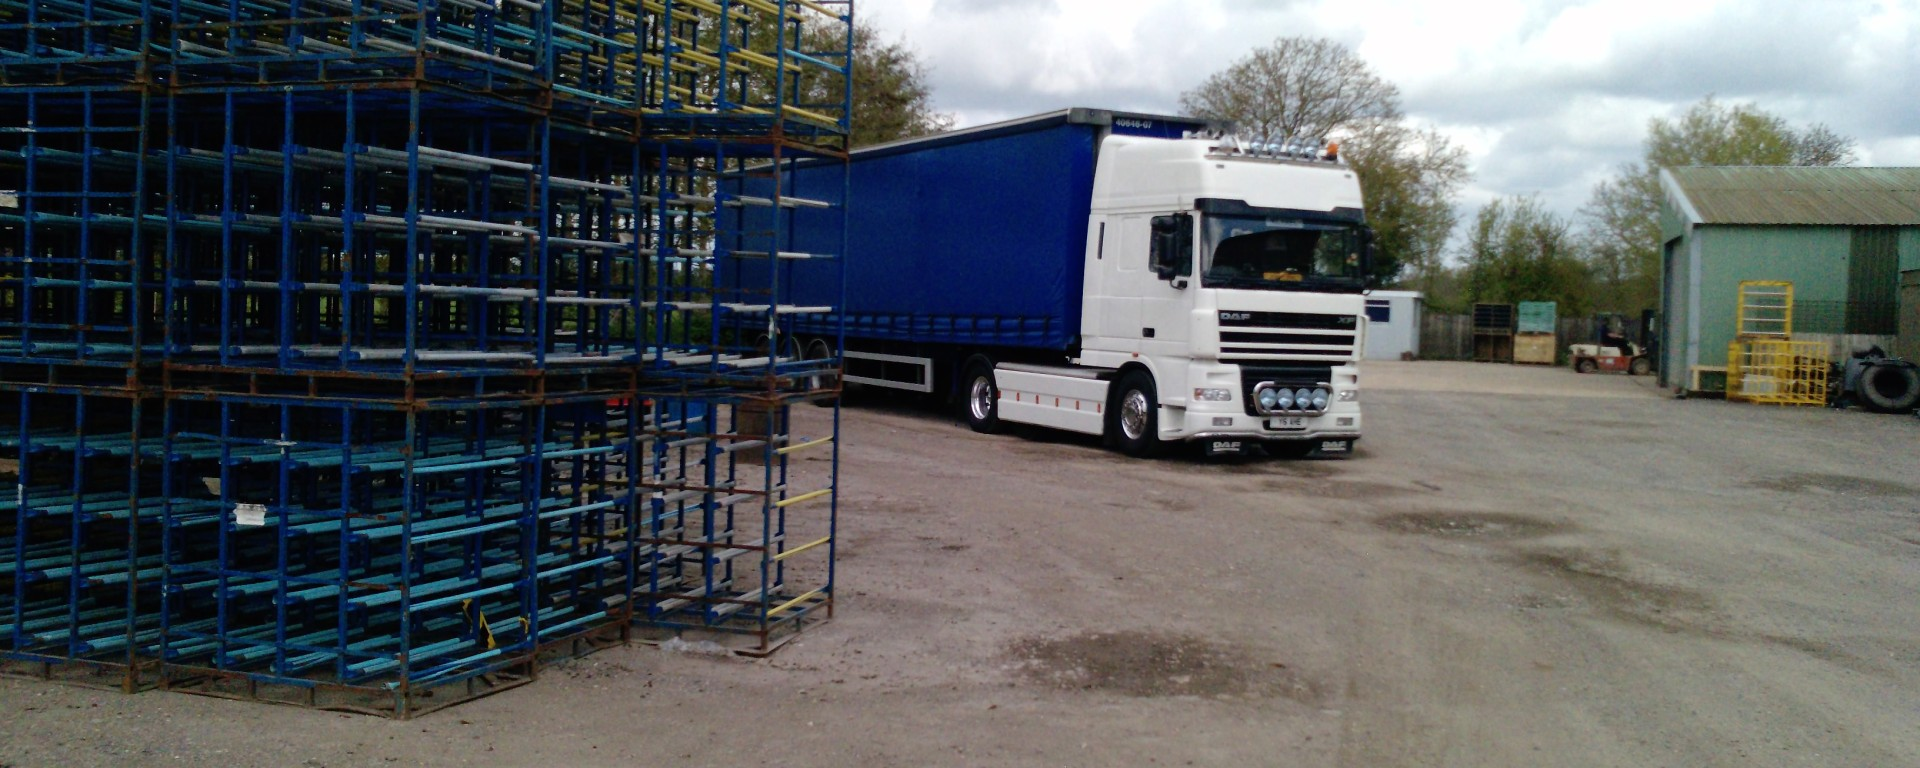 lorry on an industrial estate